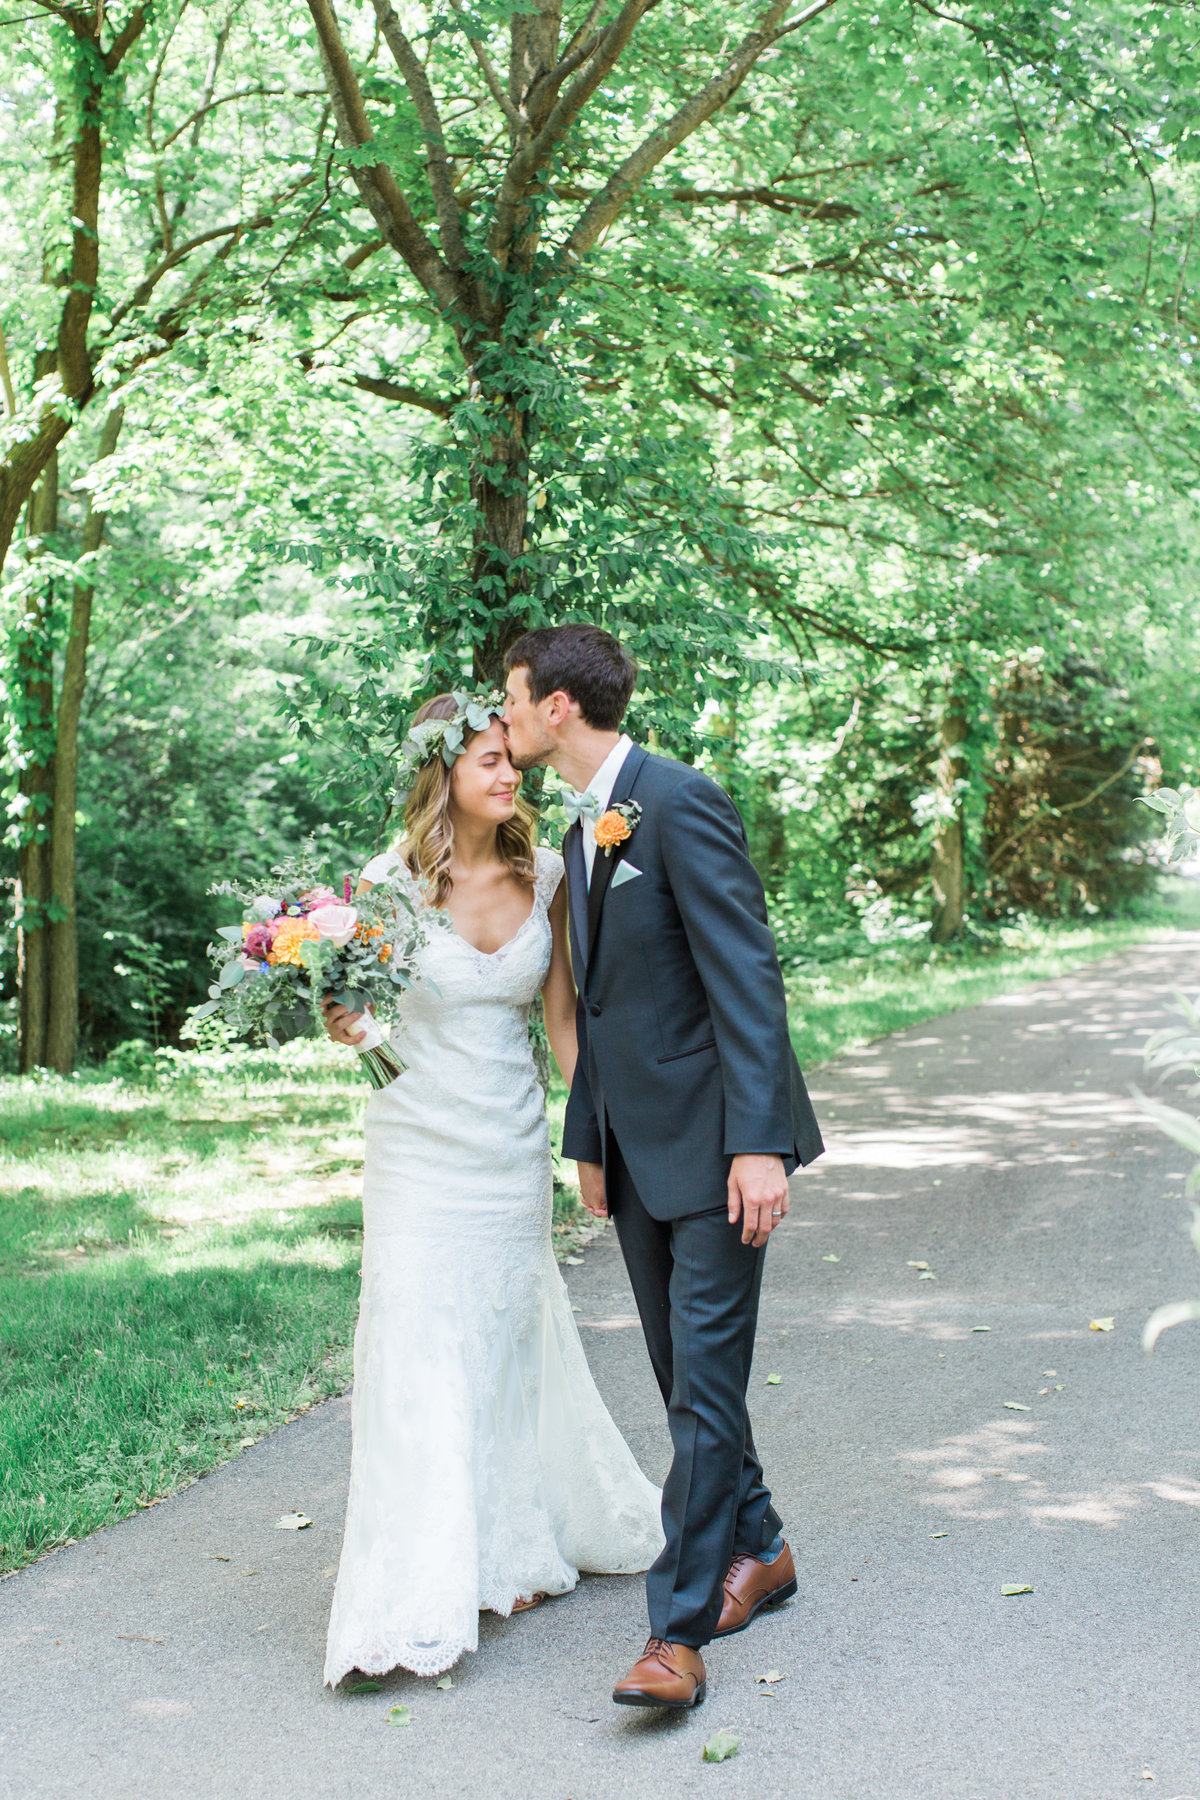 Charley Creek Gardens Wedding Bride and Groom Walking Photo